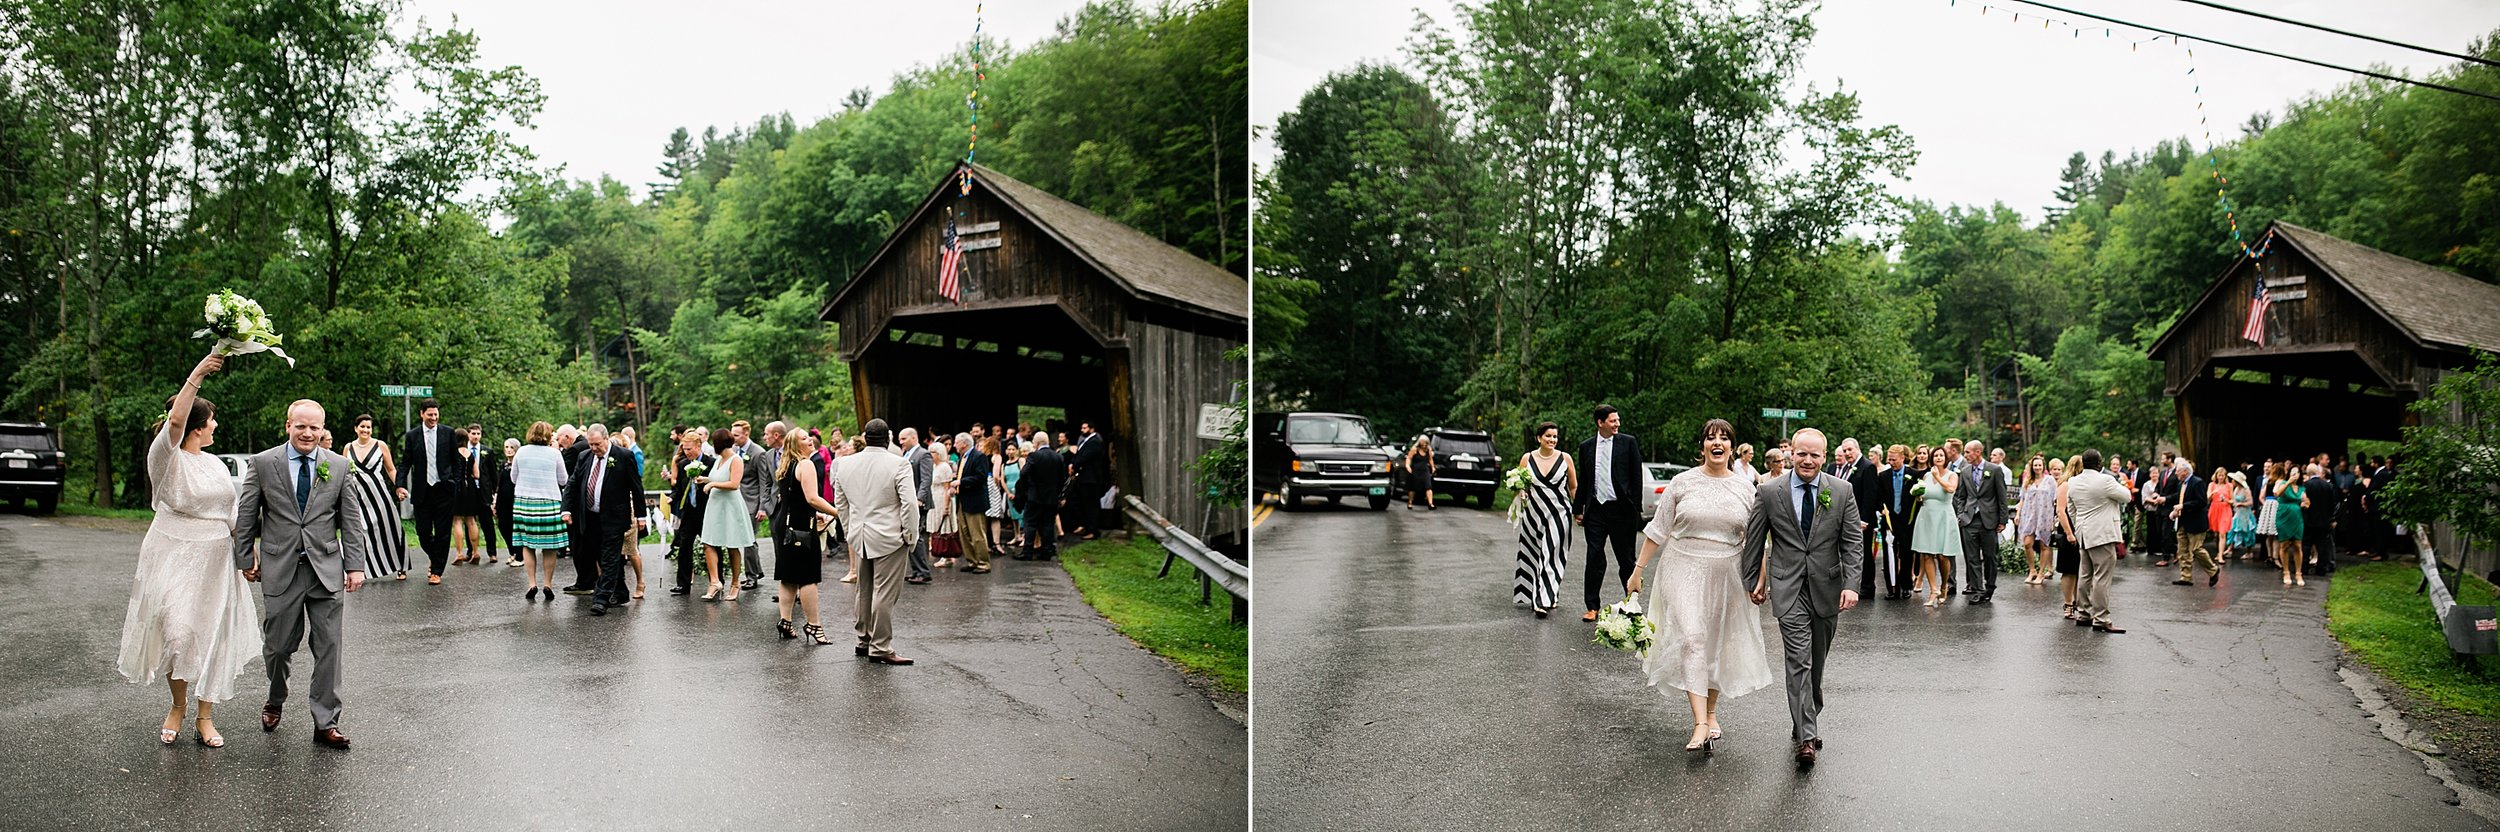 035-los-angeles-wedding-photography-todd-danforth-vermont.jpg